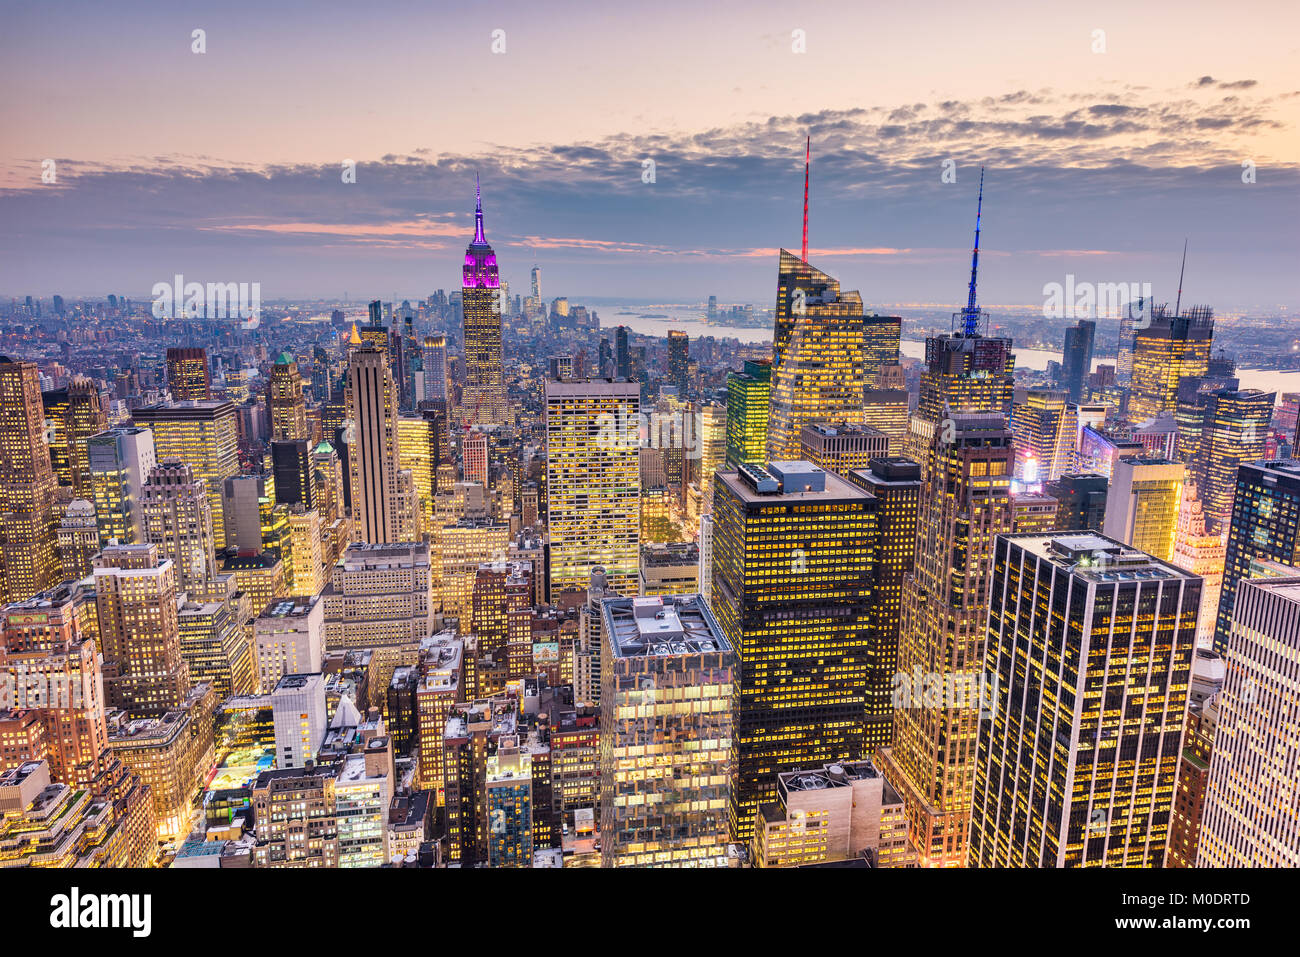 New York City, USA midtown Manhattan financial district cityscape at dusk. Stock Photo